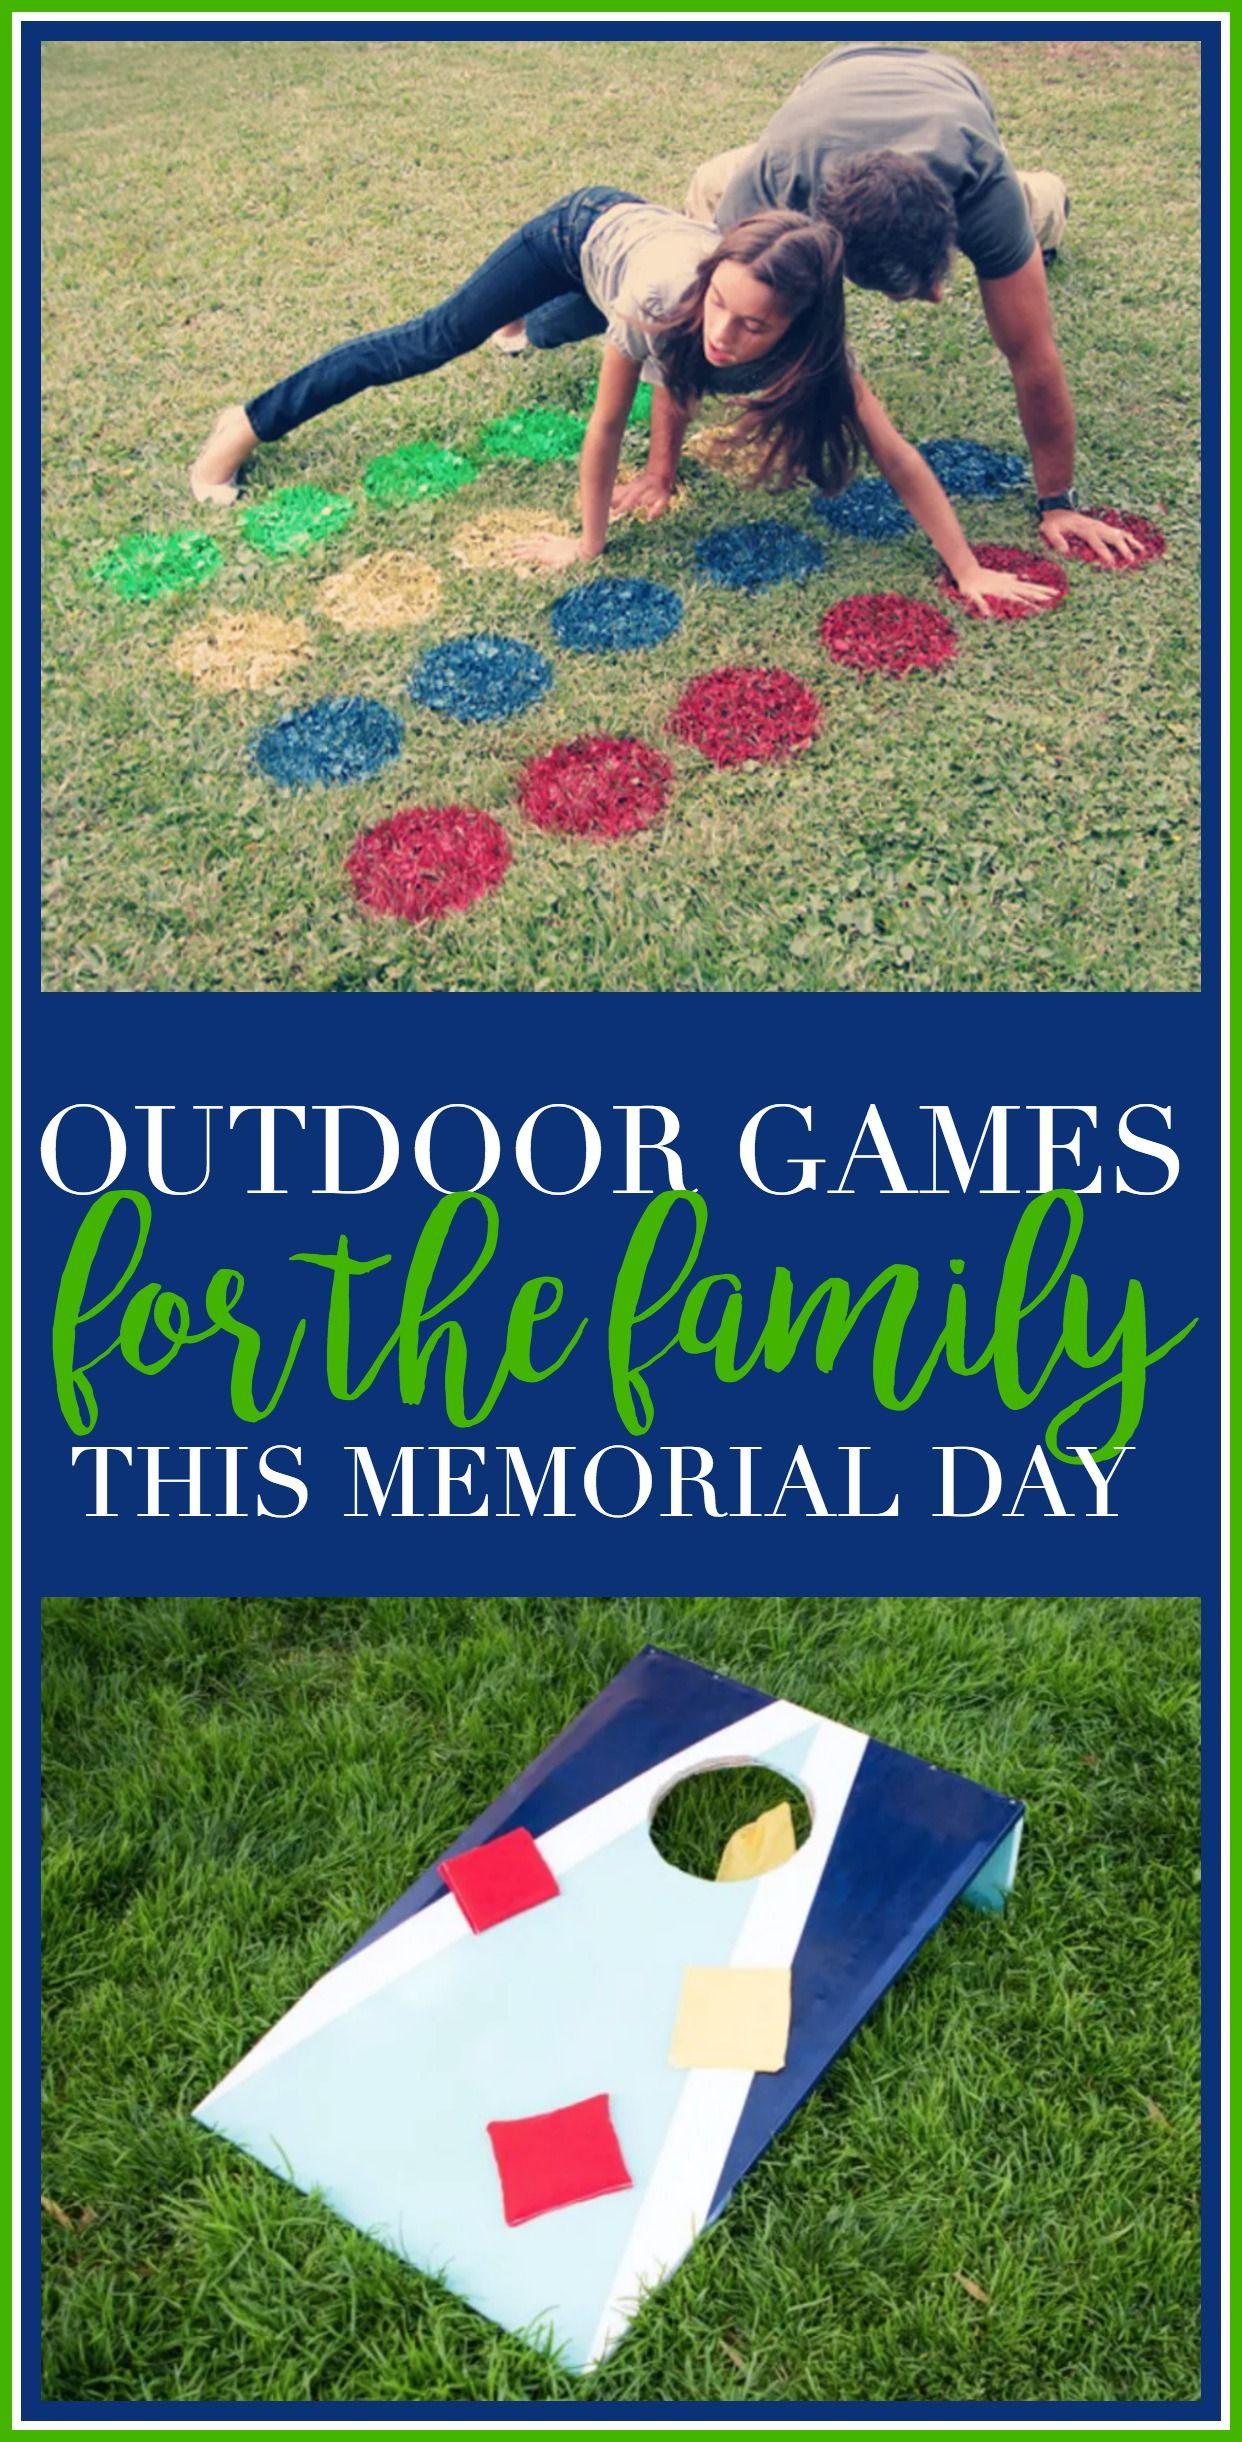 Memorial Day 101 Camping games for adults, Outdoor games